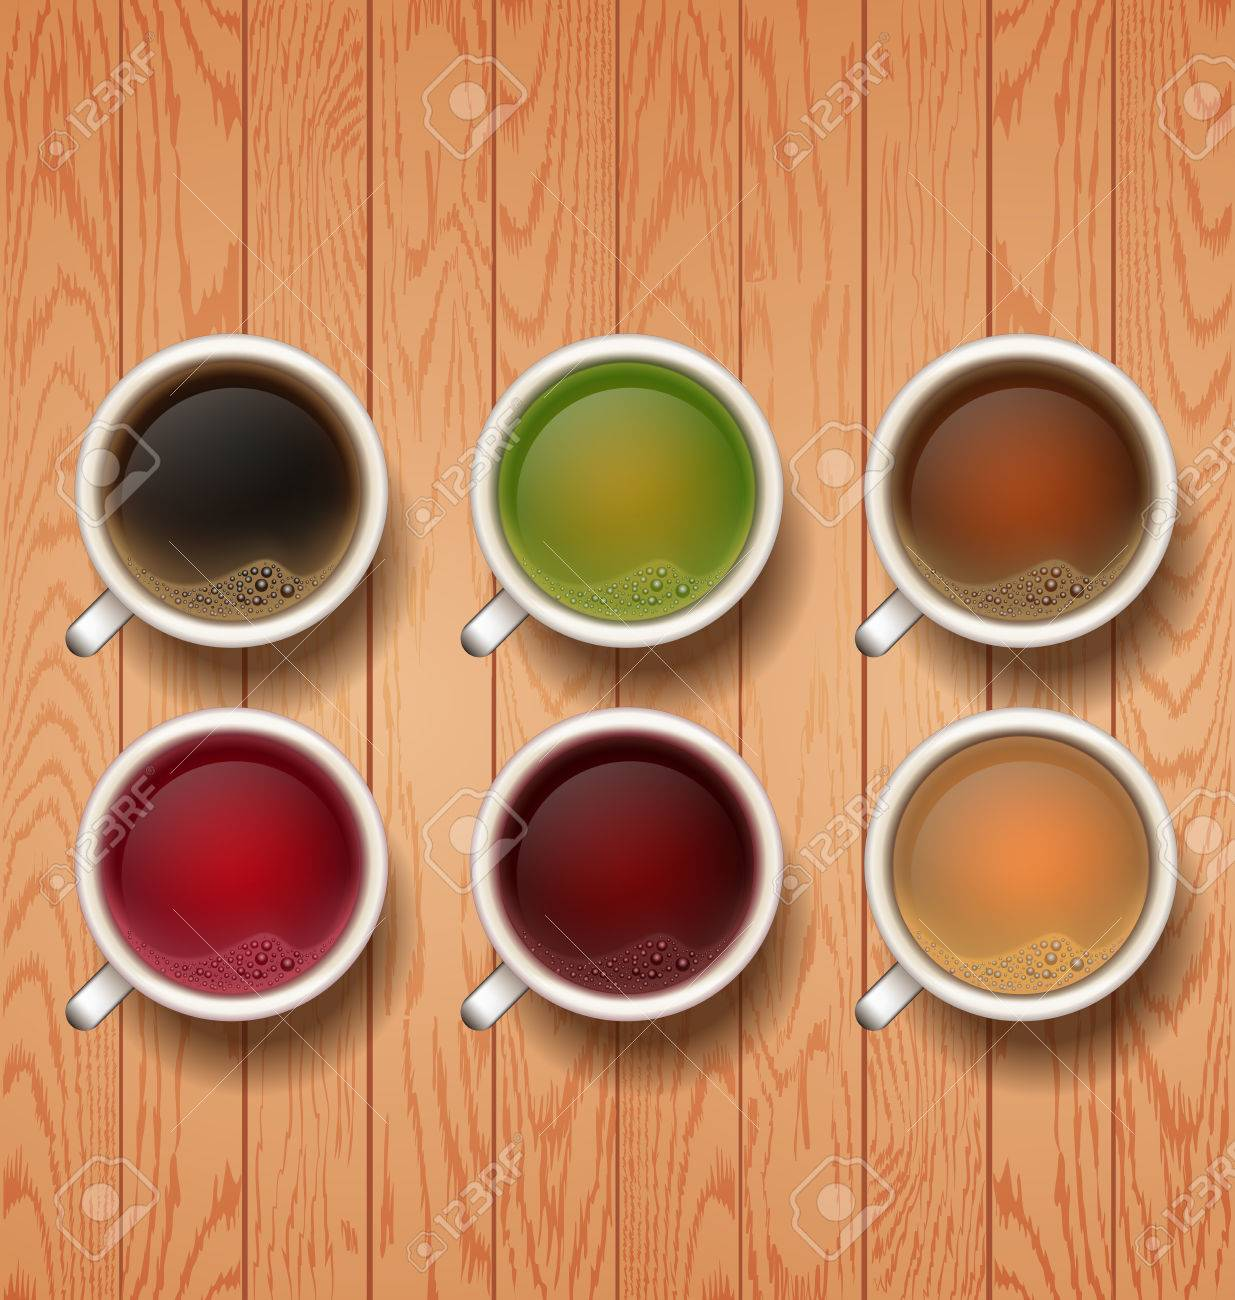 Good Morning Types Of Tea Tea Cups Cup Of Red Black Green